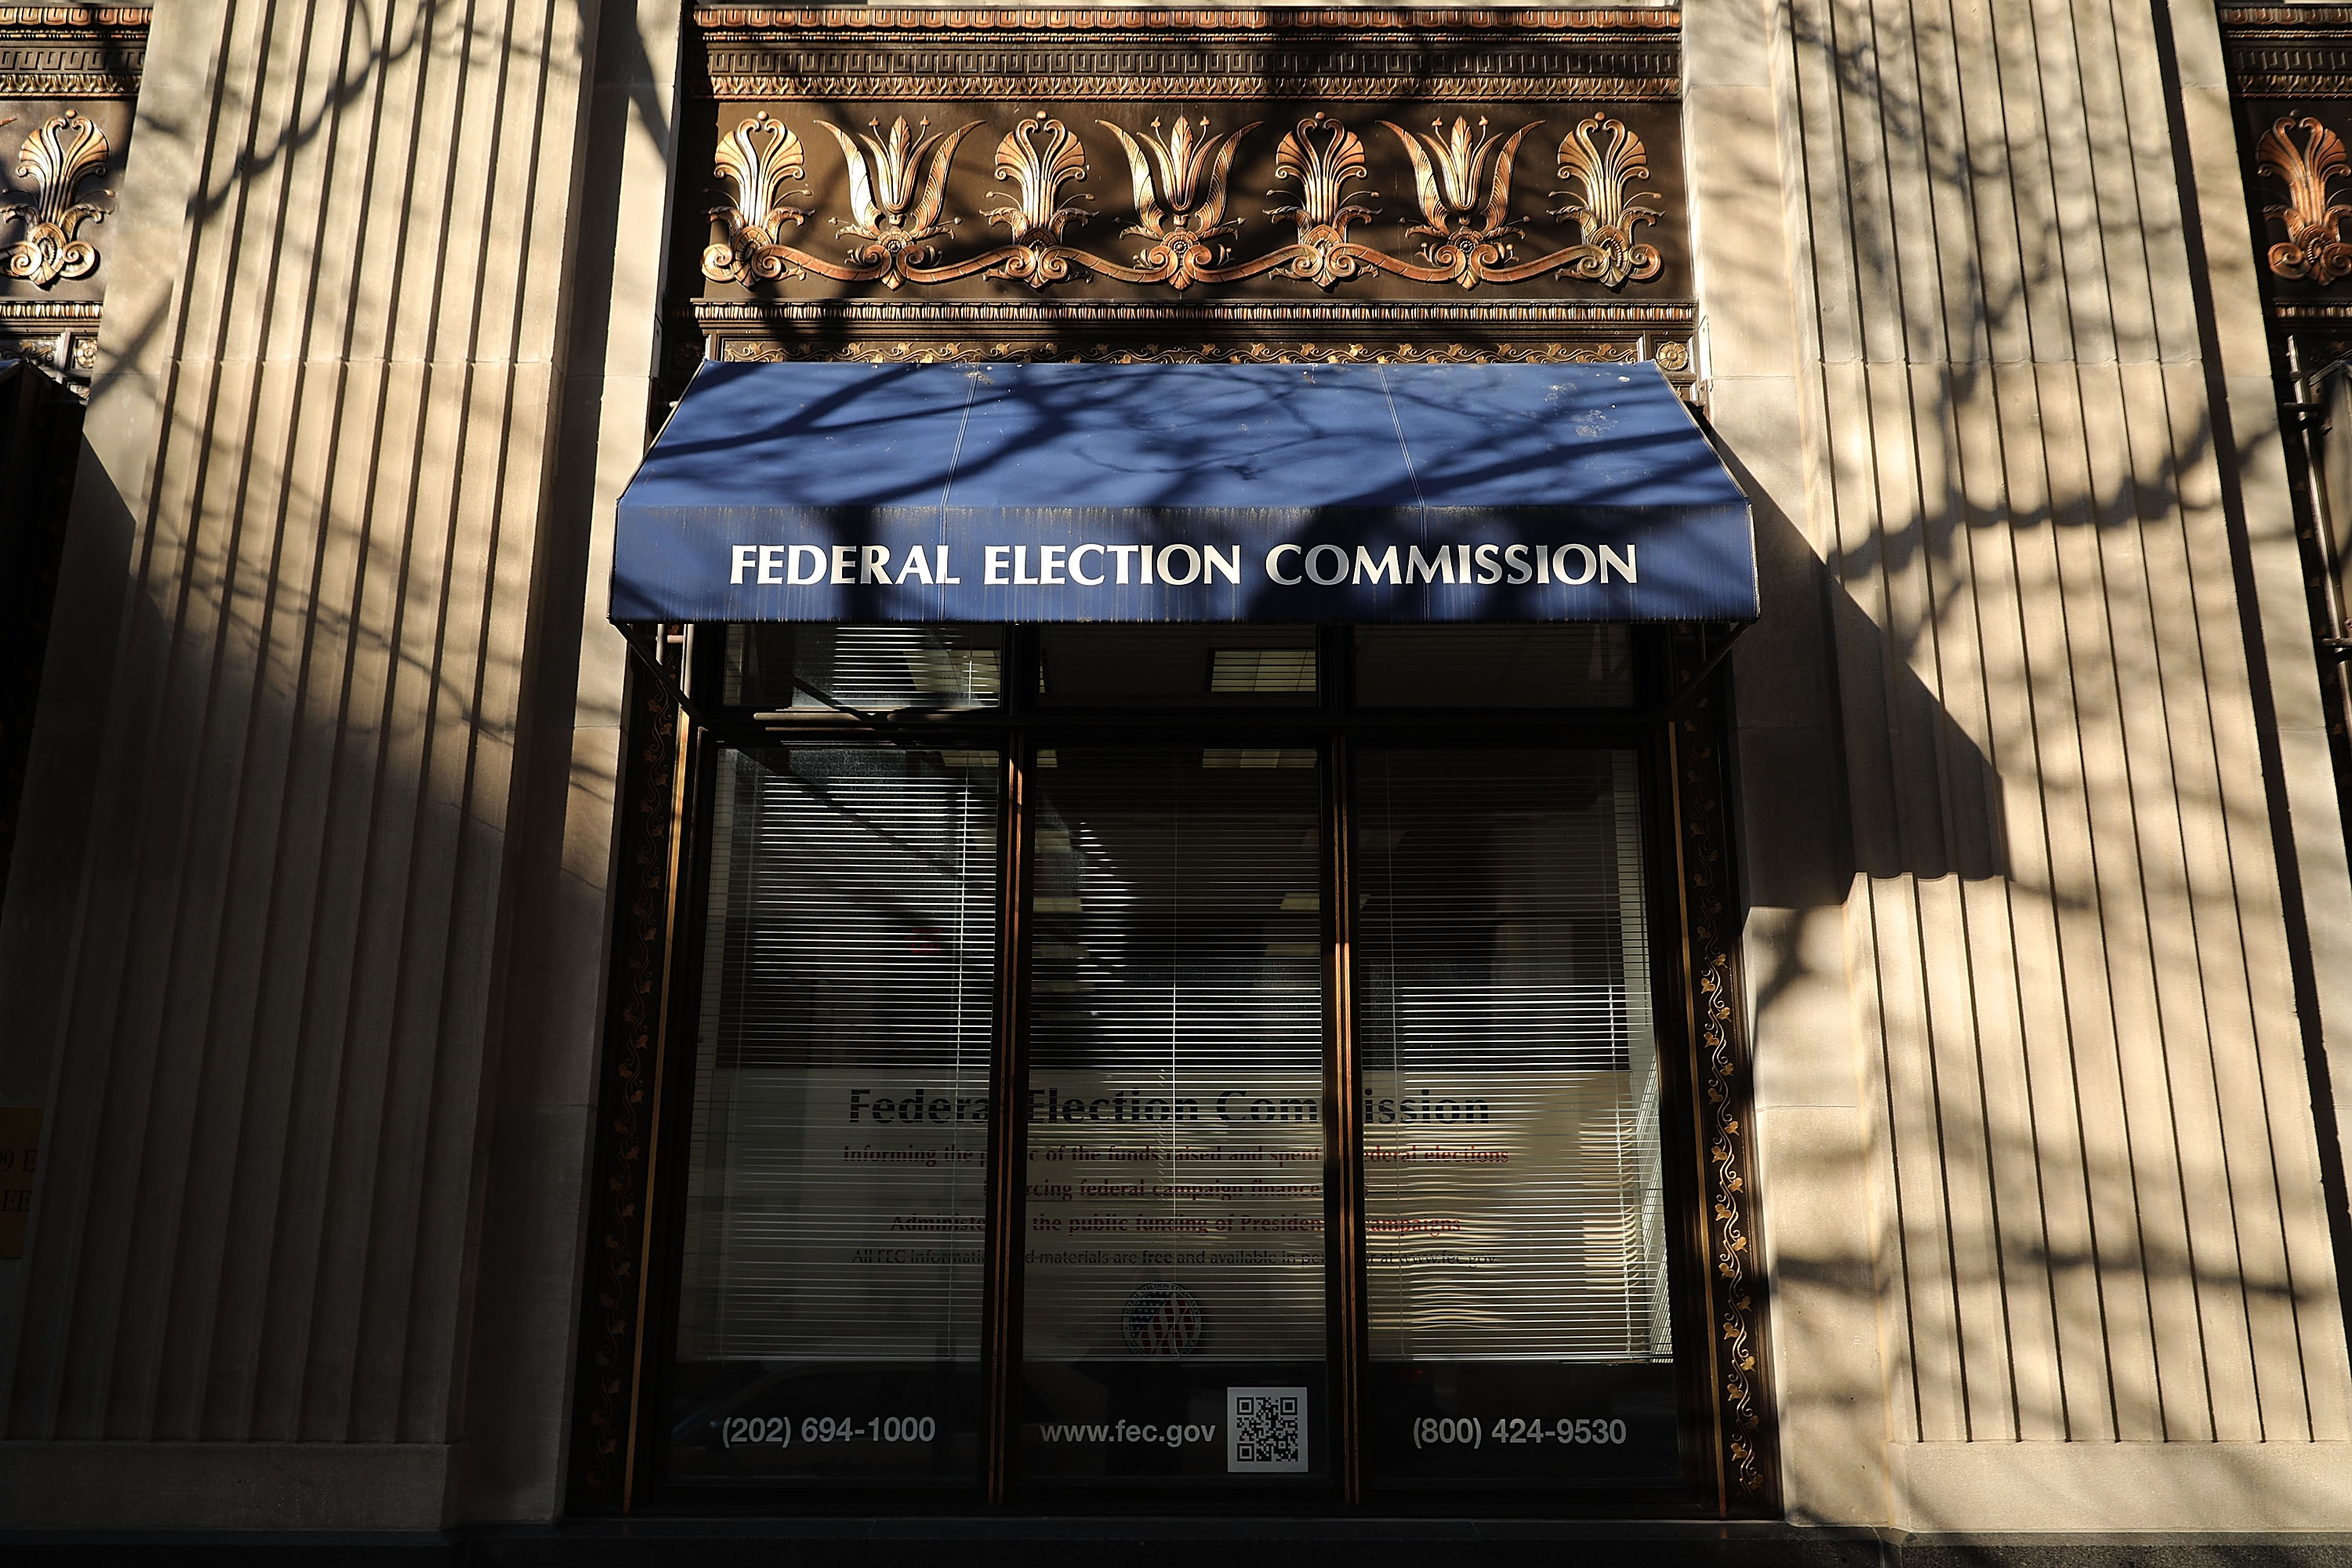 The Federal Election Commission headquarters October 24, 2016 in Washington, DC. (Photo by Chip Somodevilla/Getty Images)